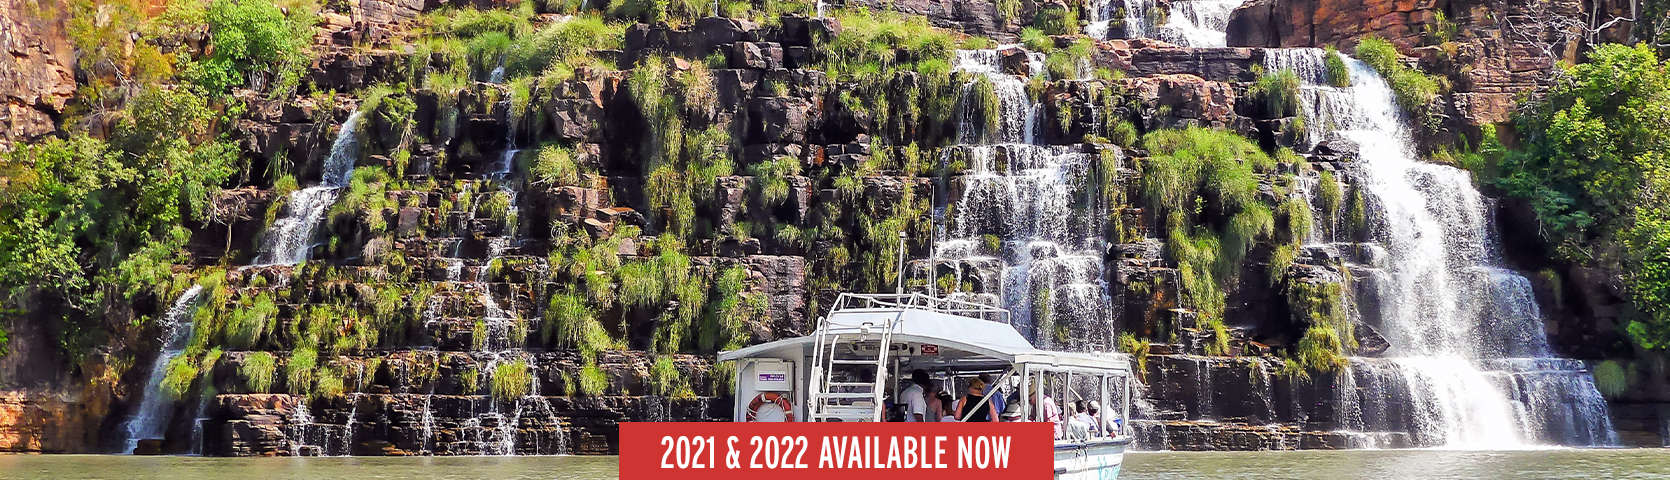 Kimberley 2021 & 2022 Waterfalls (2)